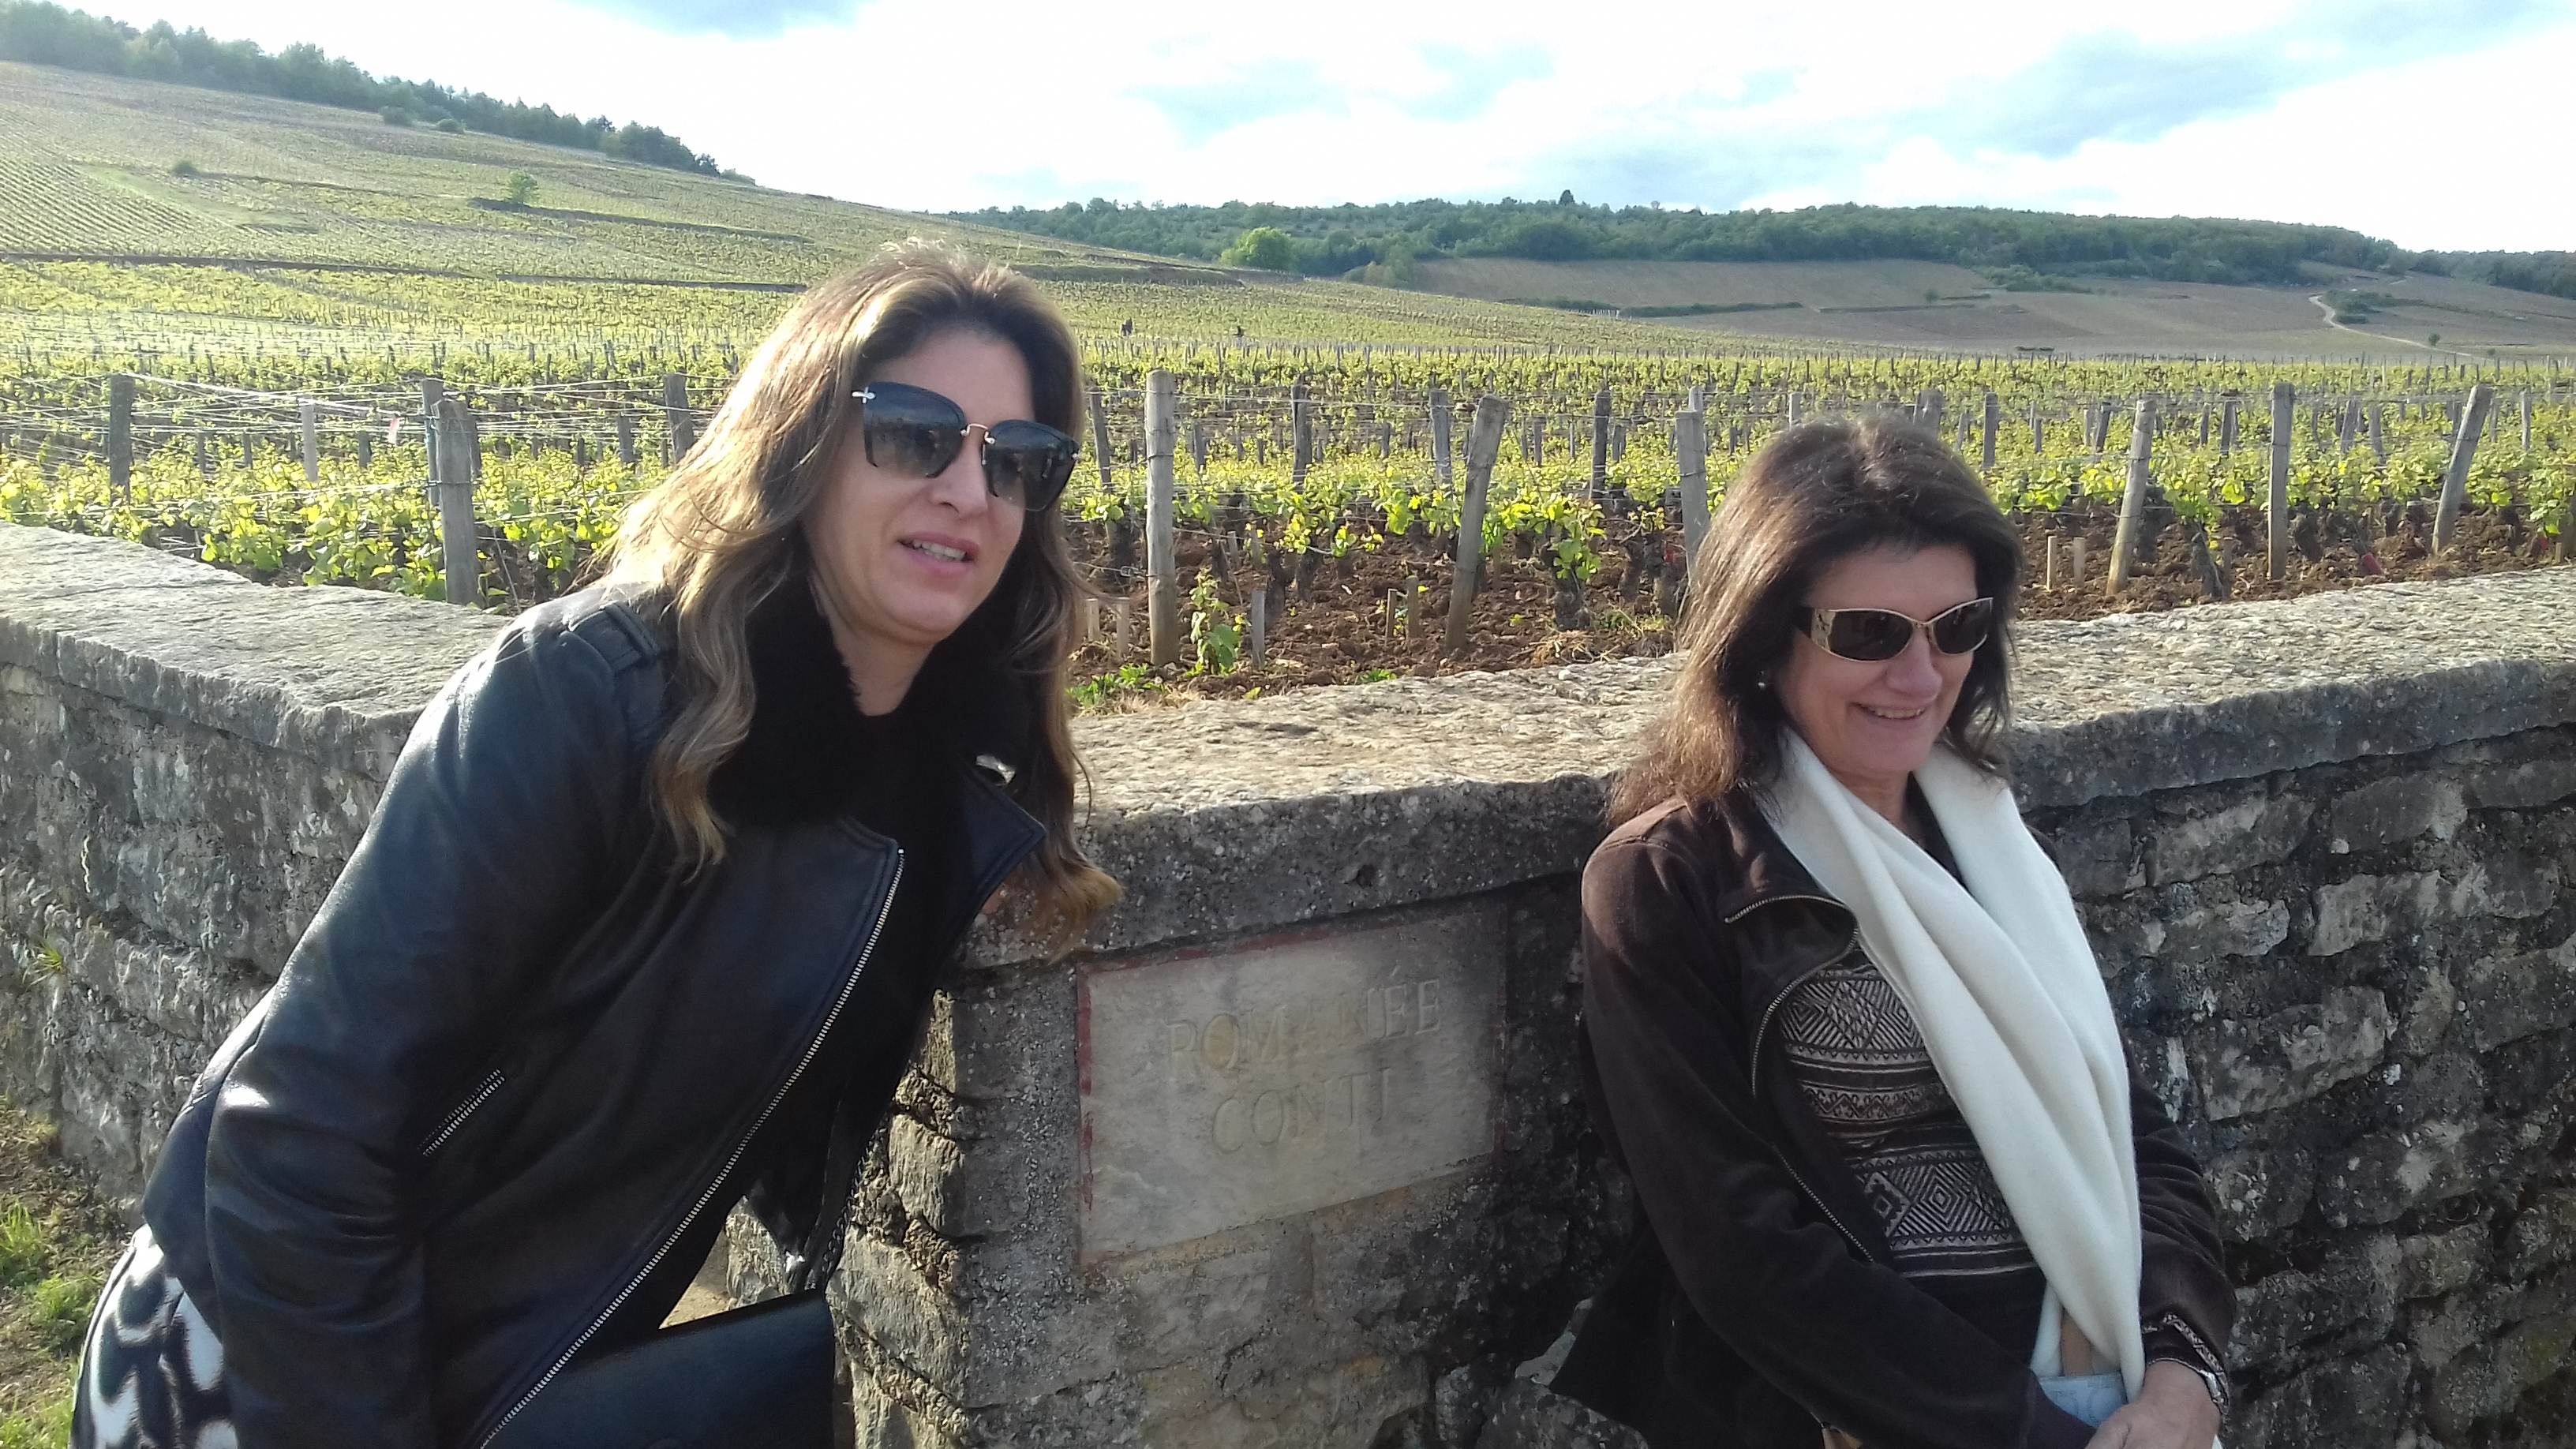 portrait of guests during wine tour